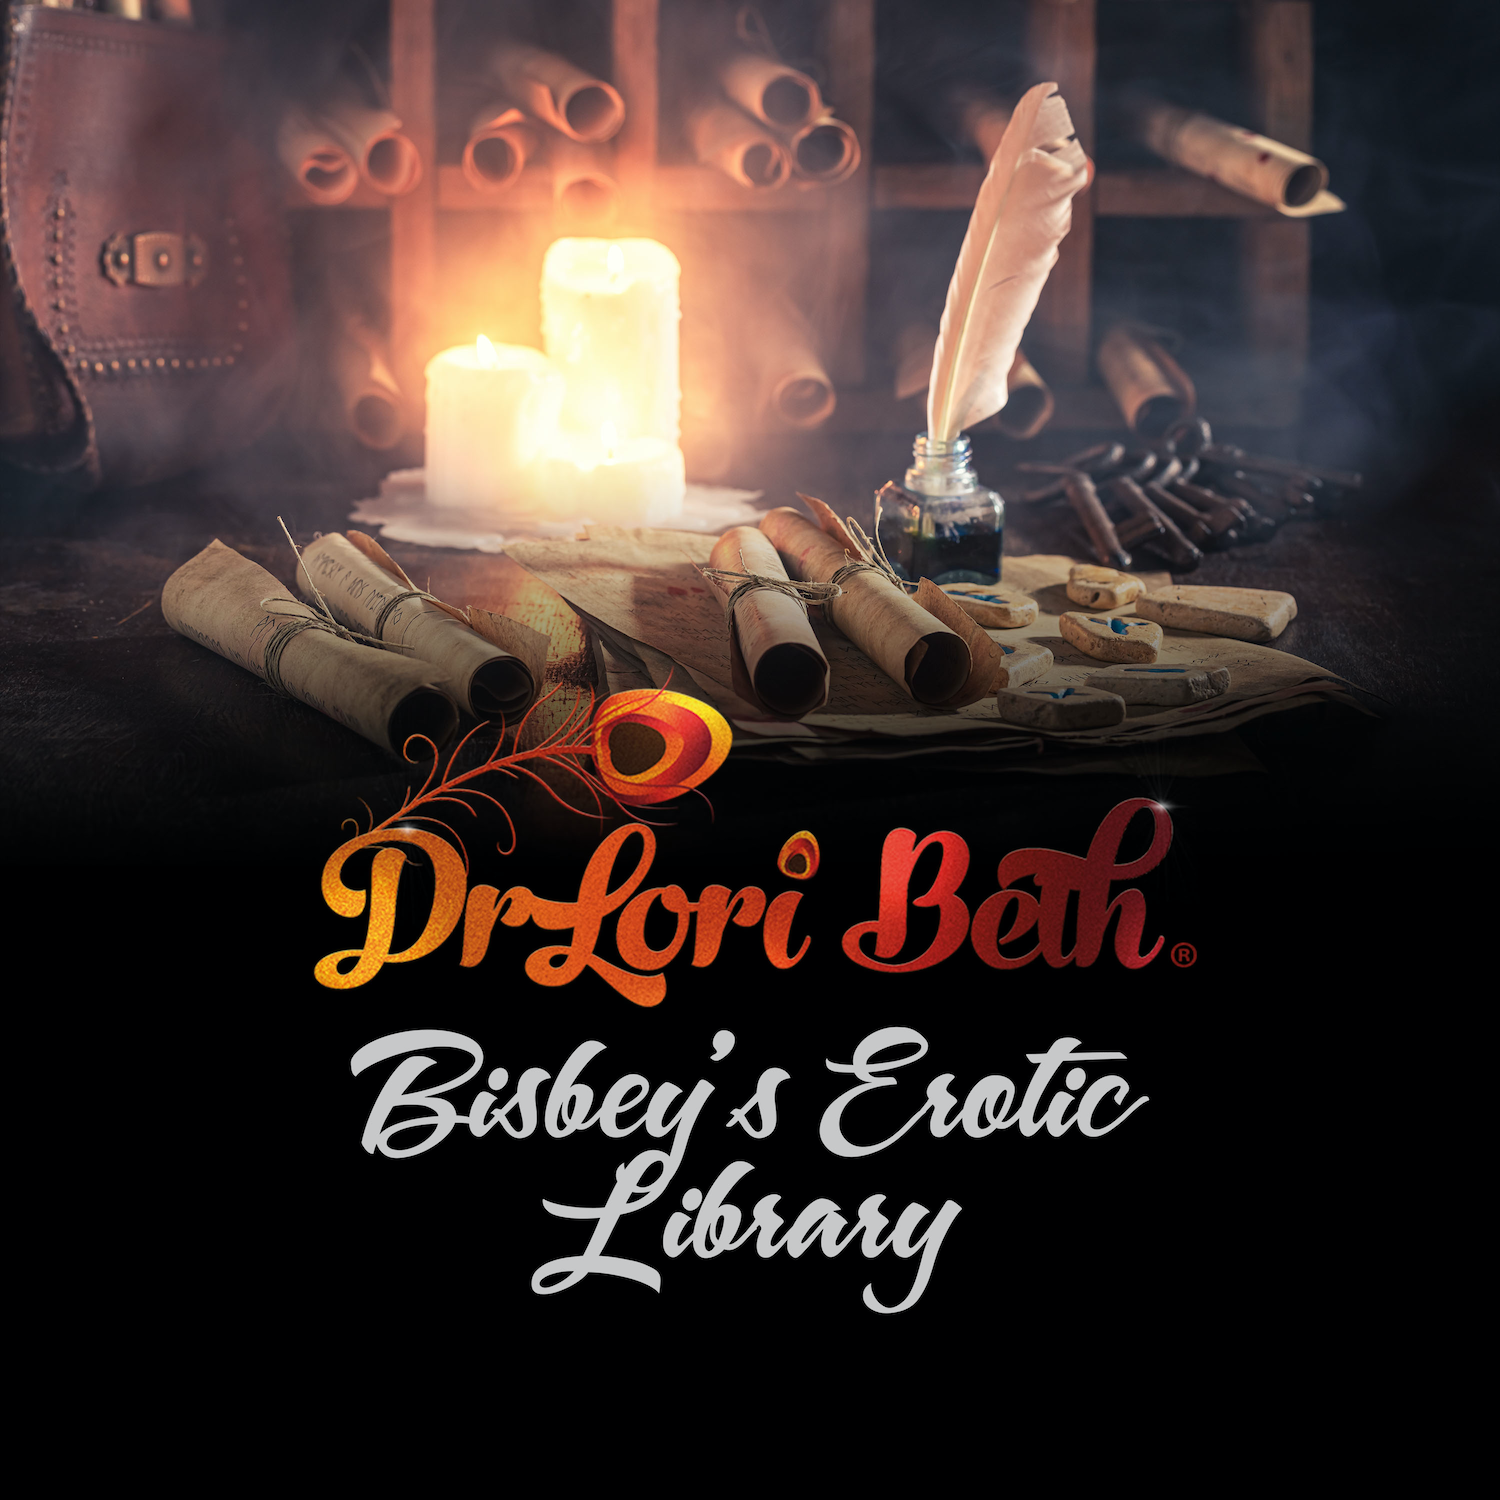 Show artwork for Dr Lori Beth Bisbey's Erotic Library